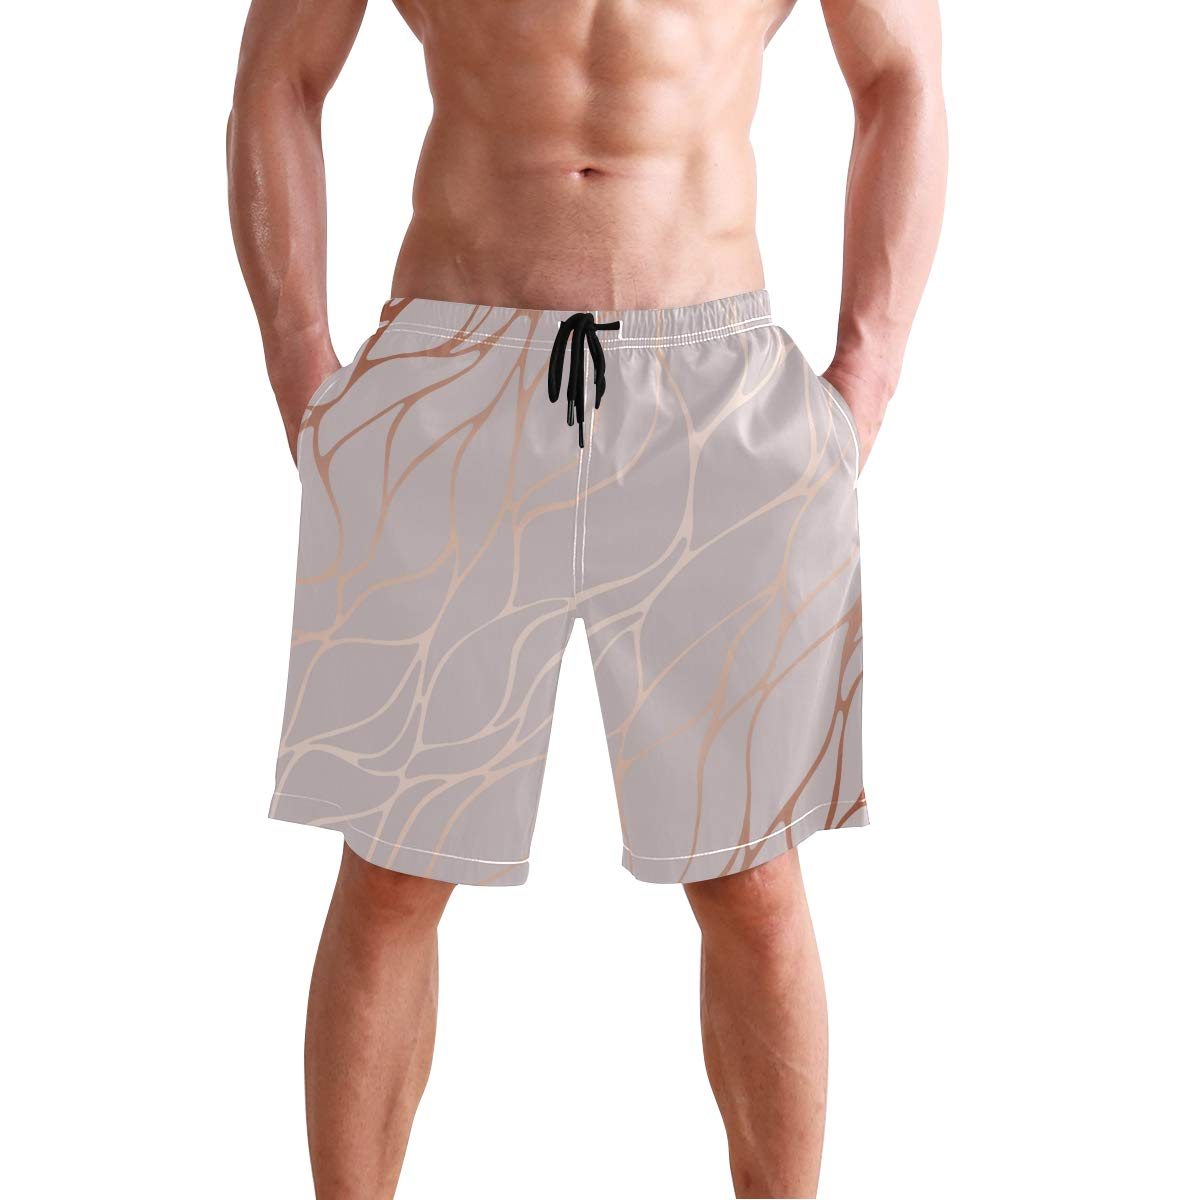 AUUXVA KUWT Mens Swim Trunks Abstract Marble Pattern Quick Dry Beach Shorts Summer Surf Board Shorts